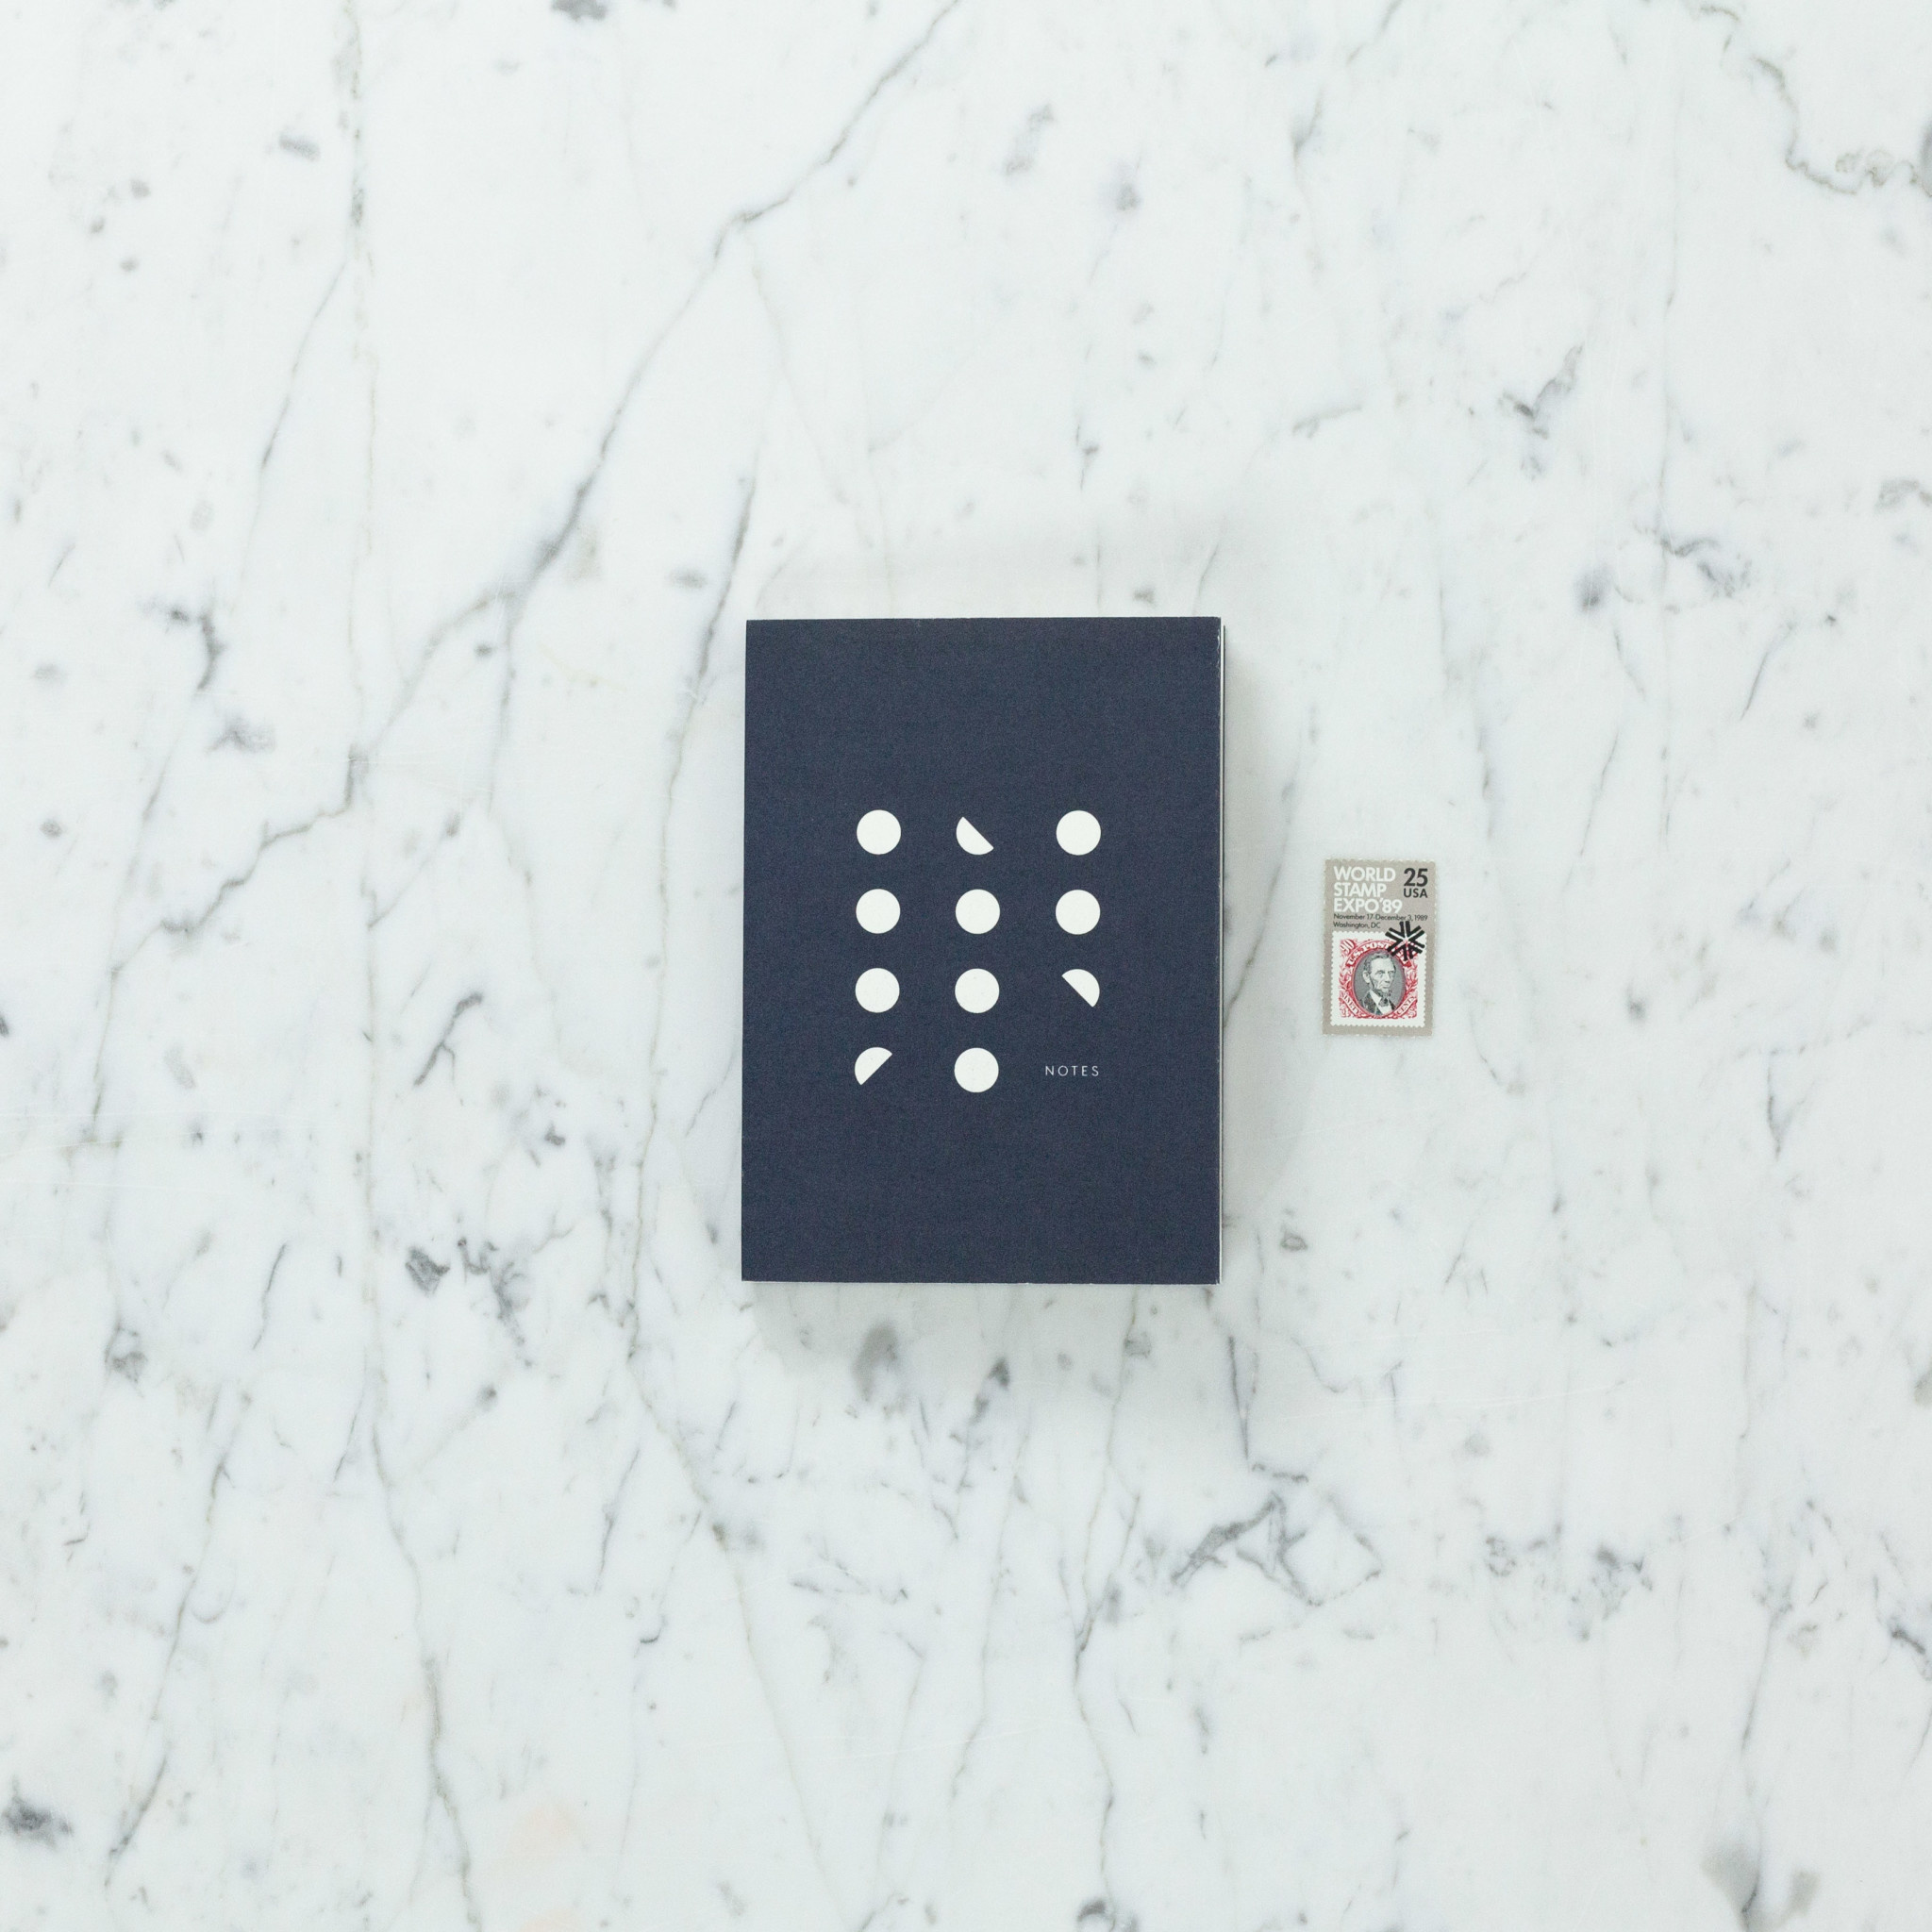 Kartotek Danish Pocket Moon Phase Notebook - Dot Grid